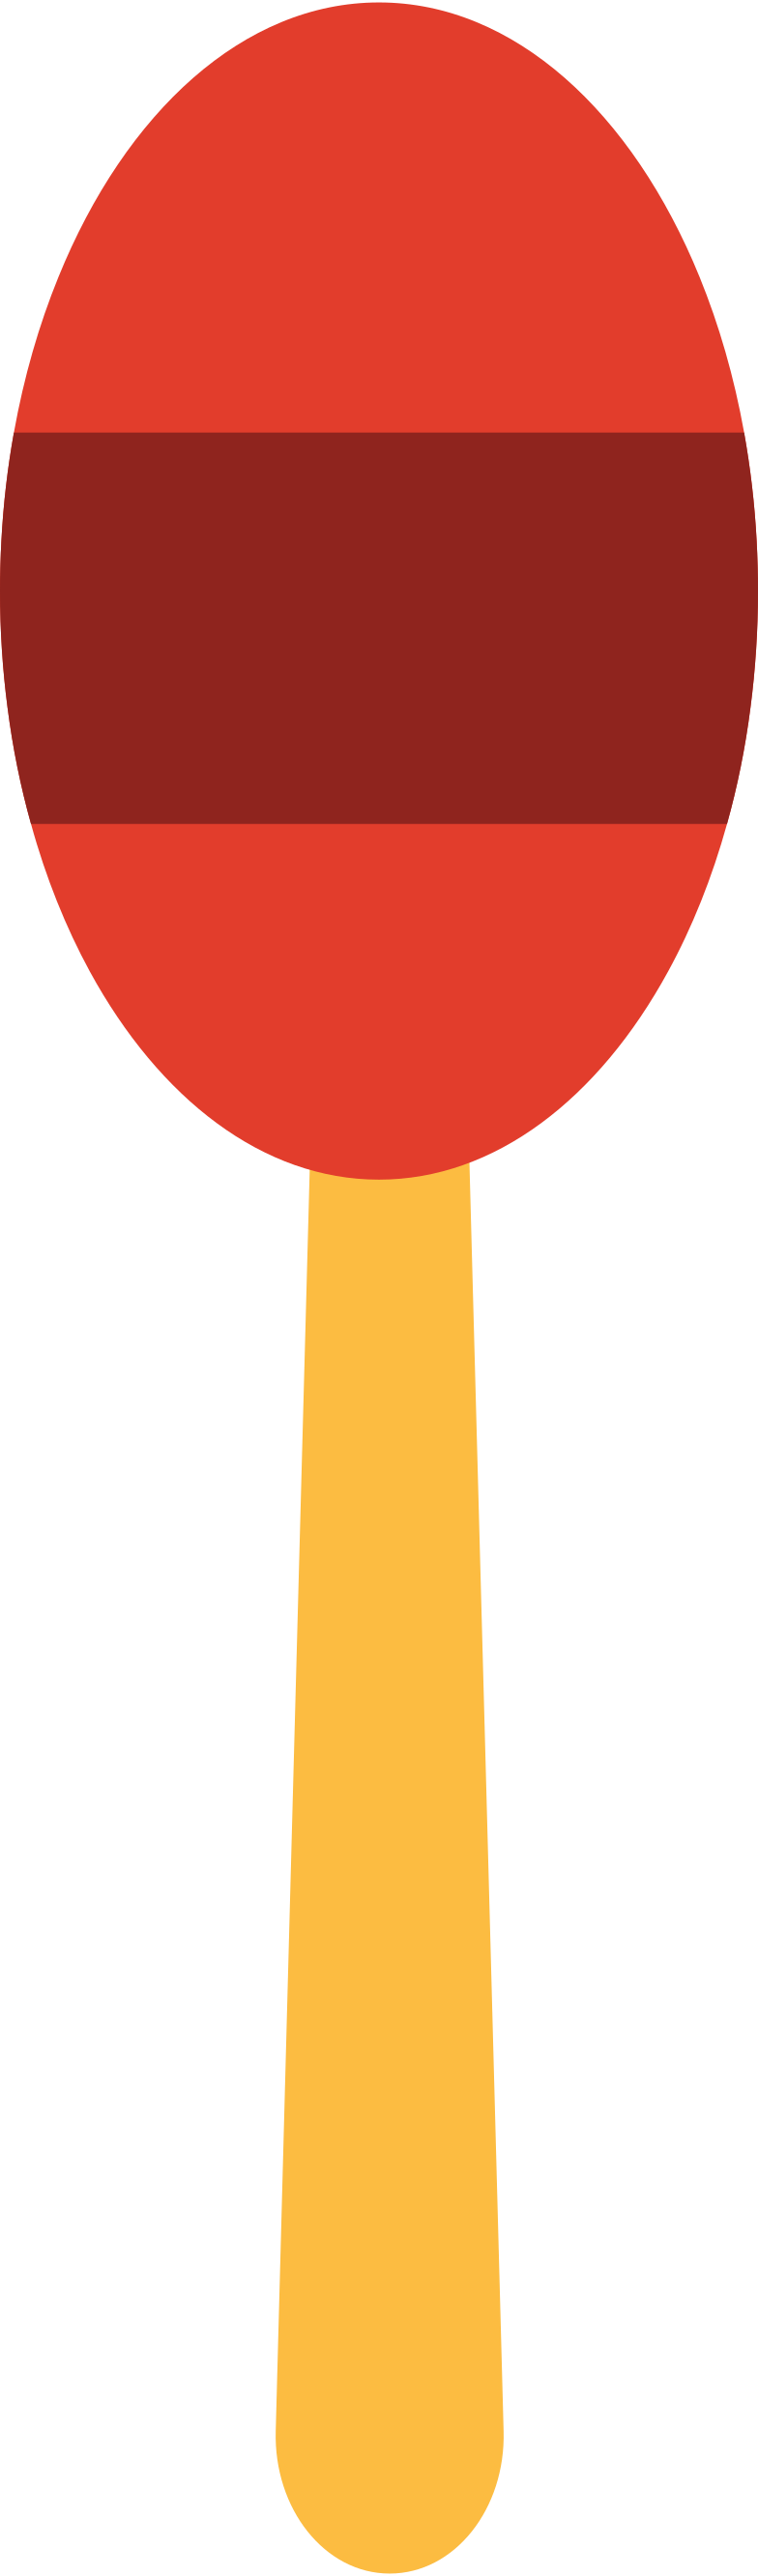 style maracas Vector images in PNG and SVG | Icons8 Illustrations